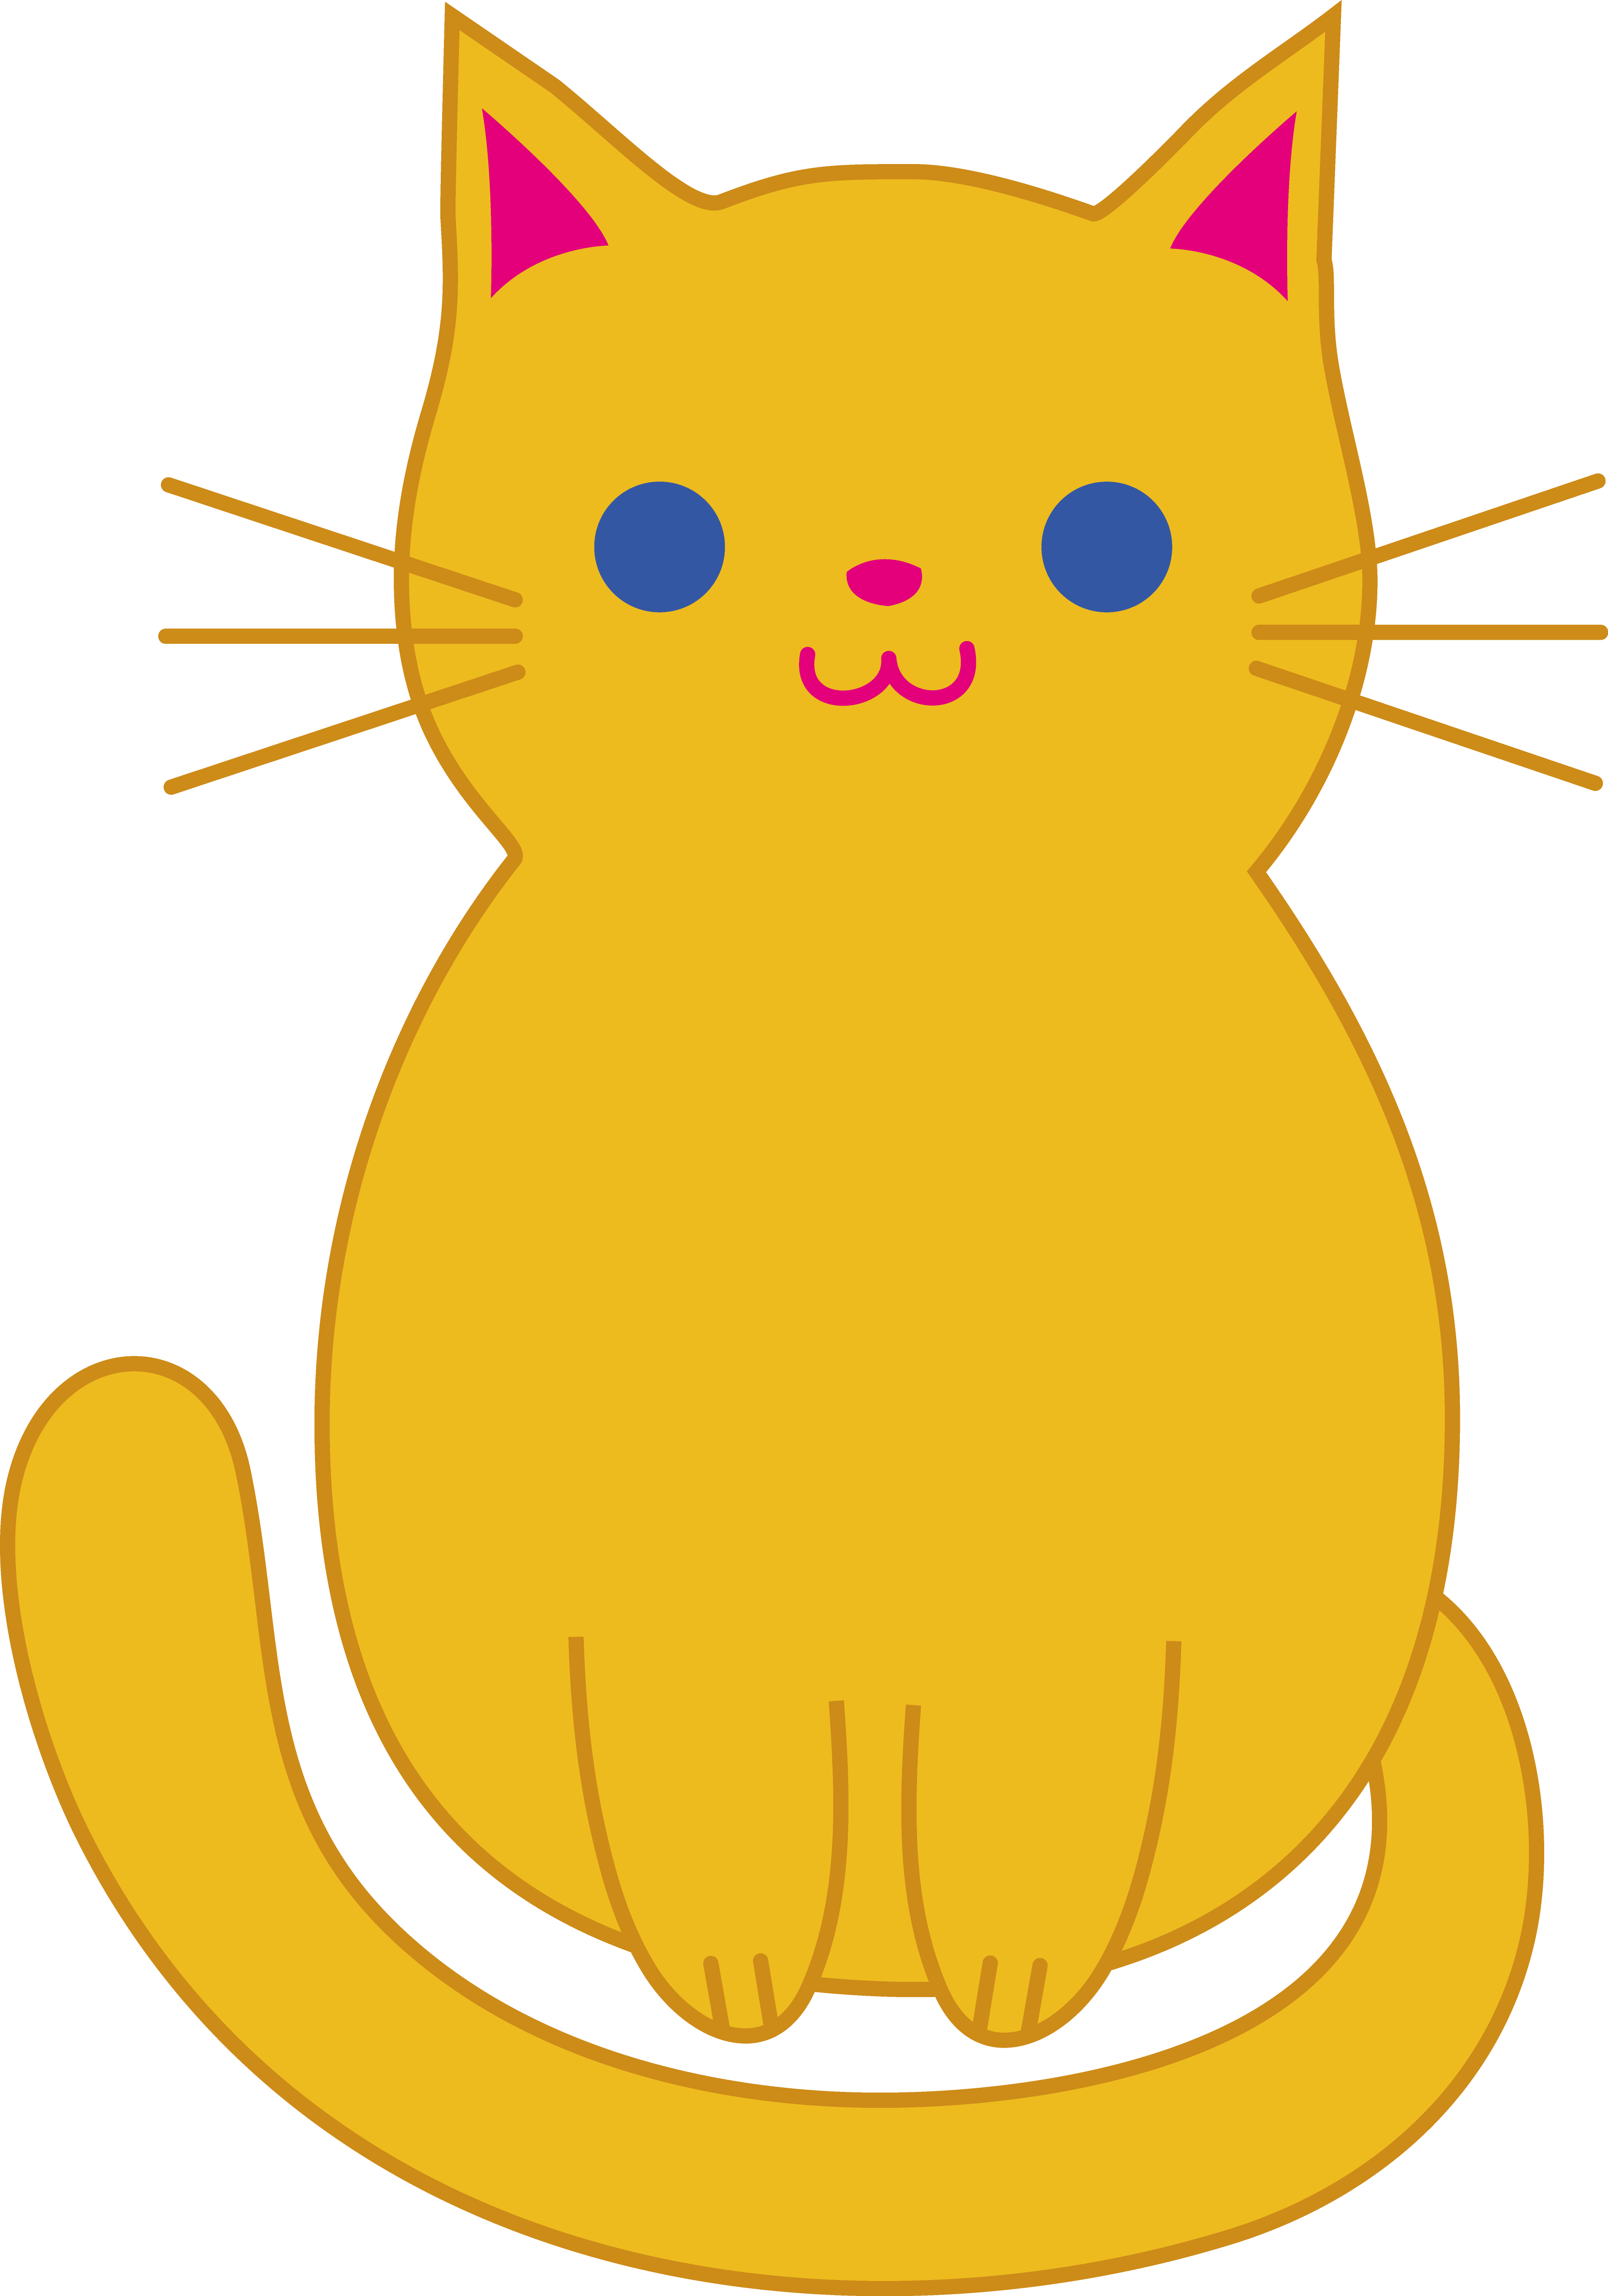 Kitten clipart simple cat. Pencil and in color